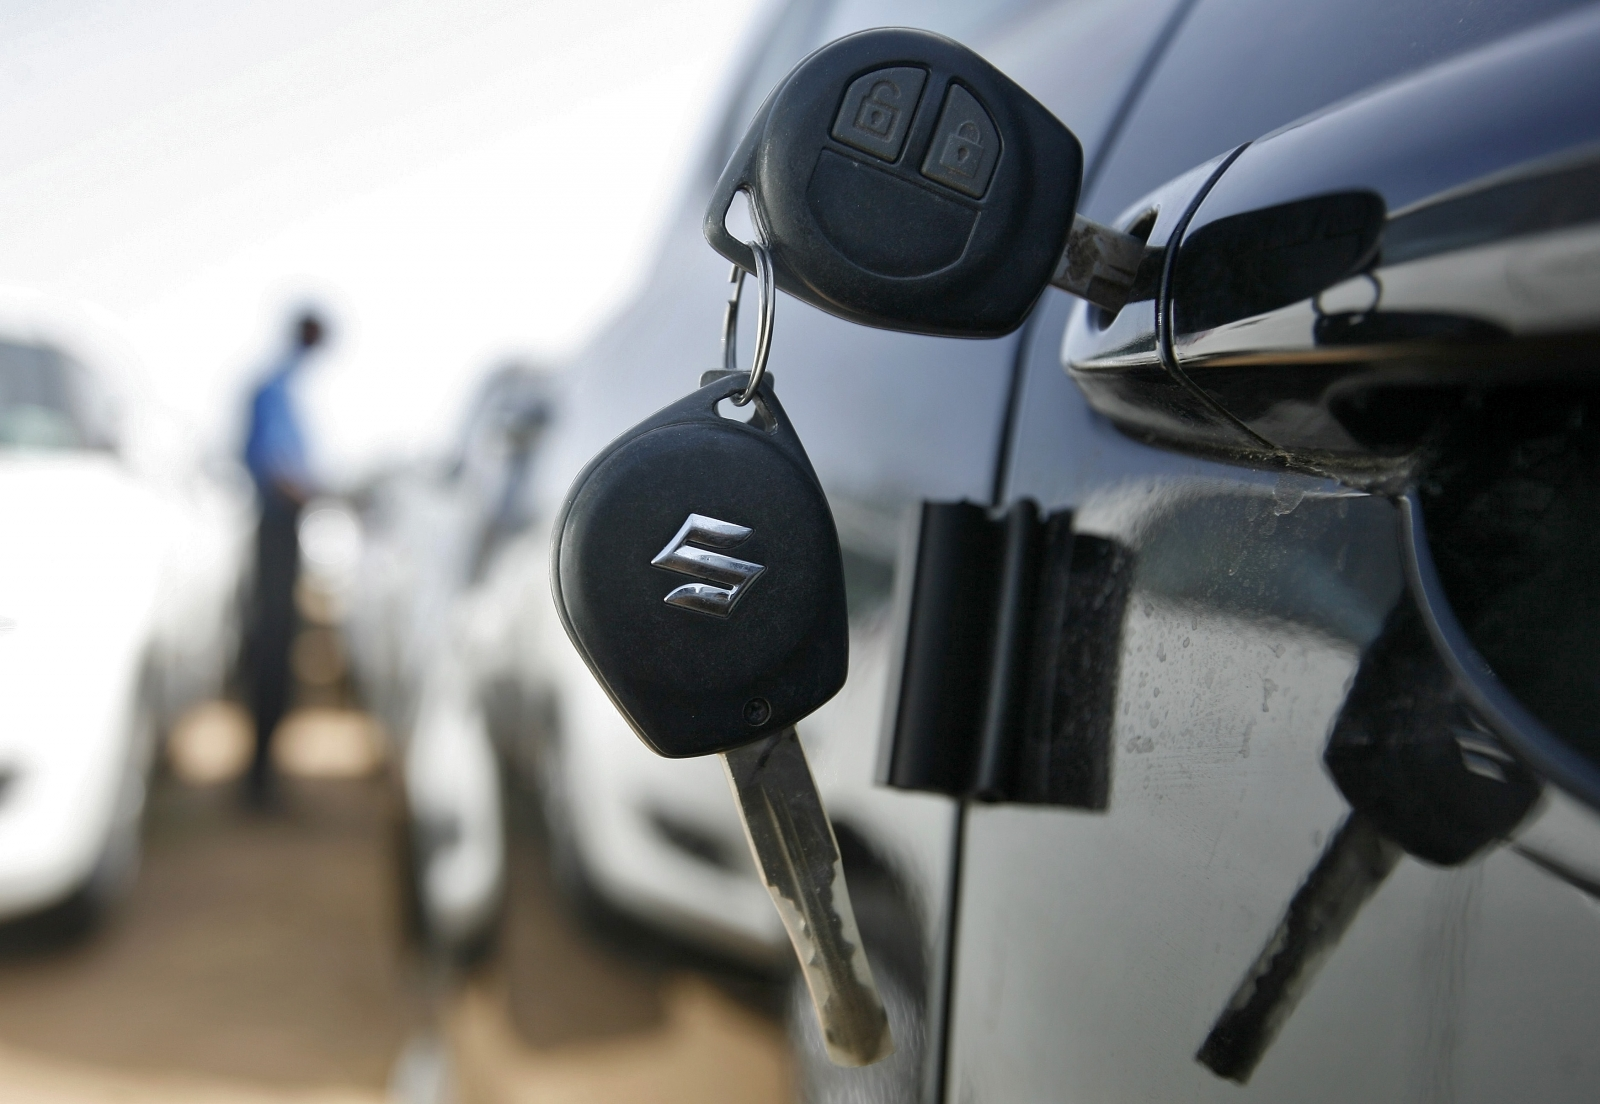 UK police warns of thieves using radio jammers on car door locks after wave of thefts